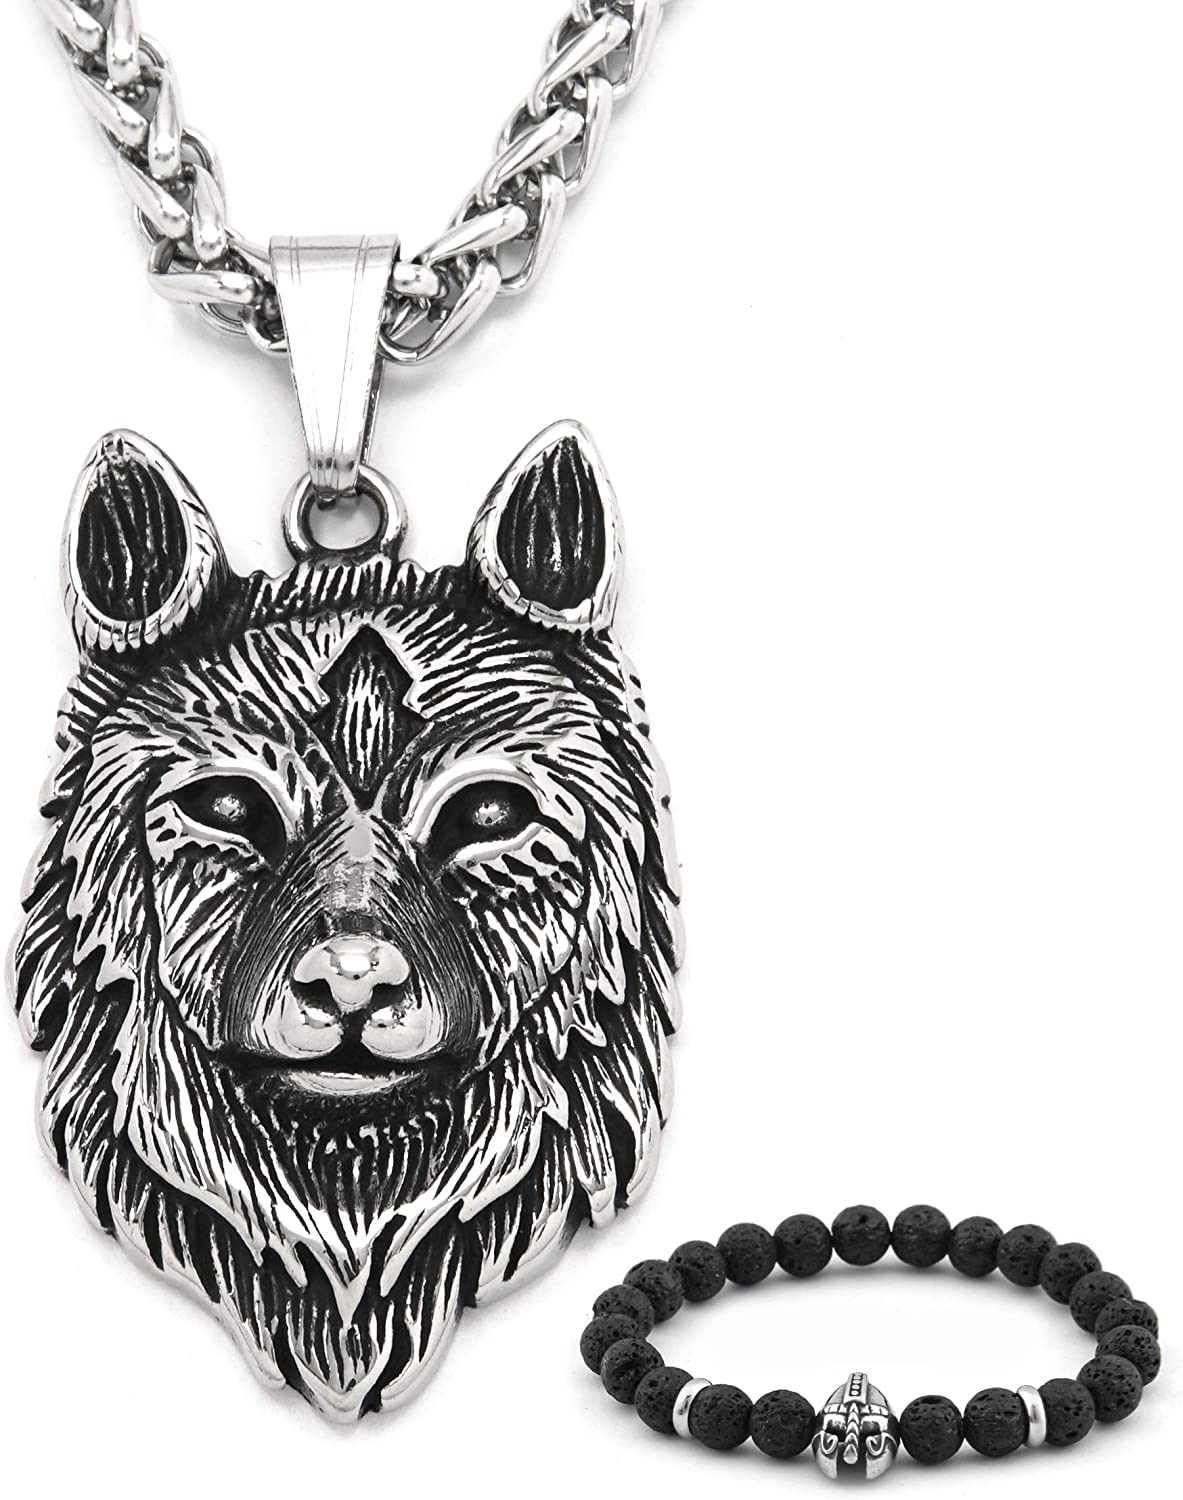 BAVIPOWER Viking Fenrir Head Pendant Stainless Steel Necklace Powerful Pagan Jewelry for Men Women Nordic Talisman Amulet Protection